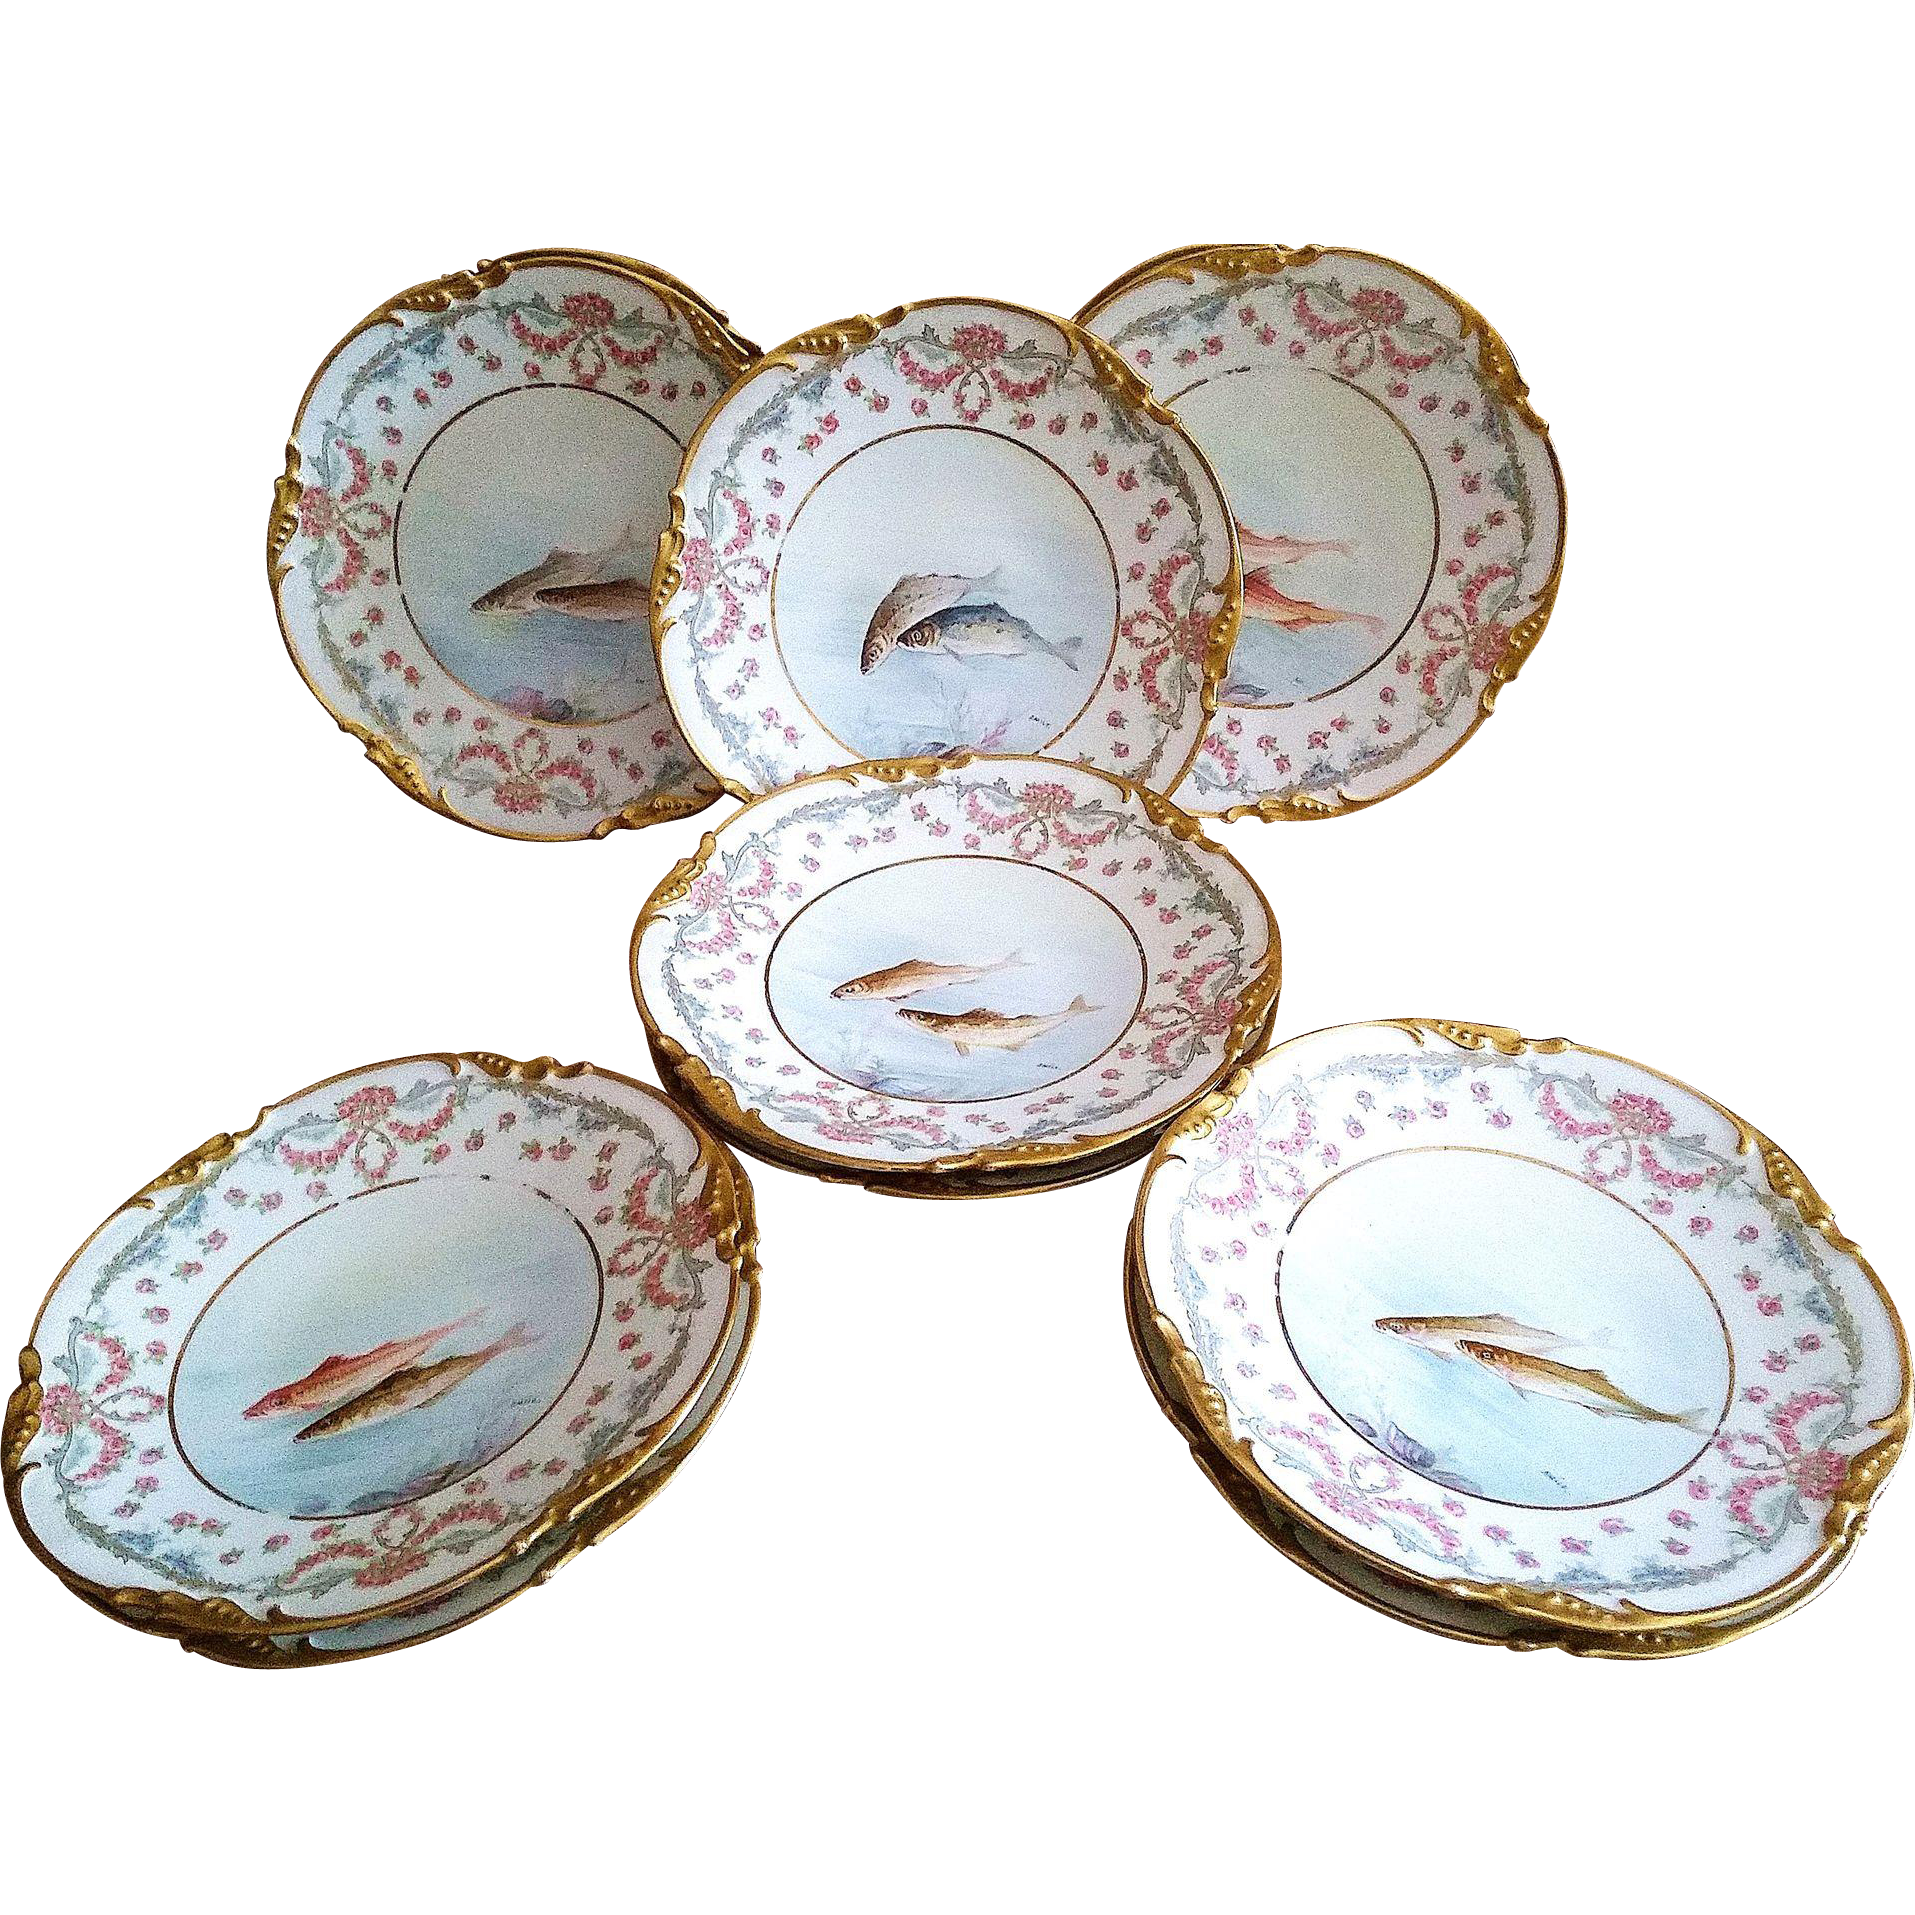 """50% OFF  Fabulous Jean Pouyat Limoges France 1900's Hand Painted """"Sea Fish & Chain of Red Roses"""" Game Set of 11 Scenic Scallop Plates by the Listed French Artist, """"Emile"""""""